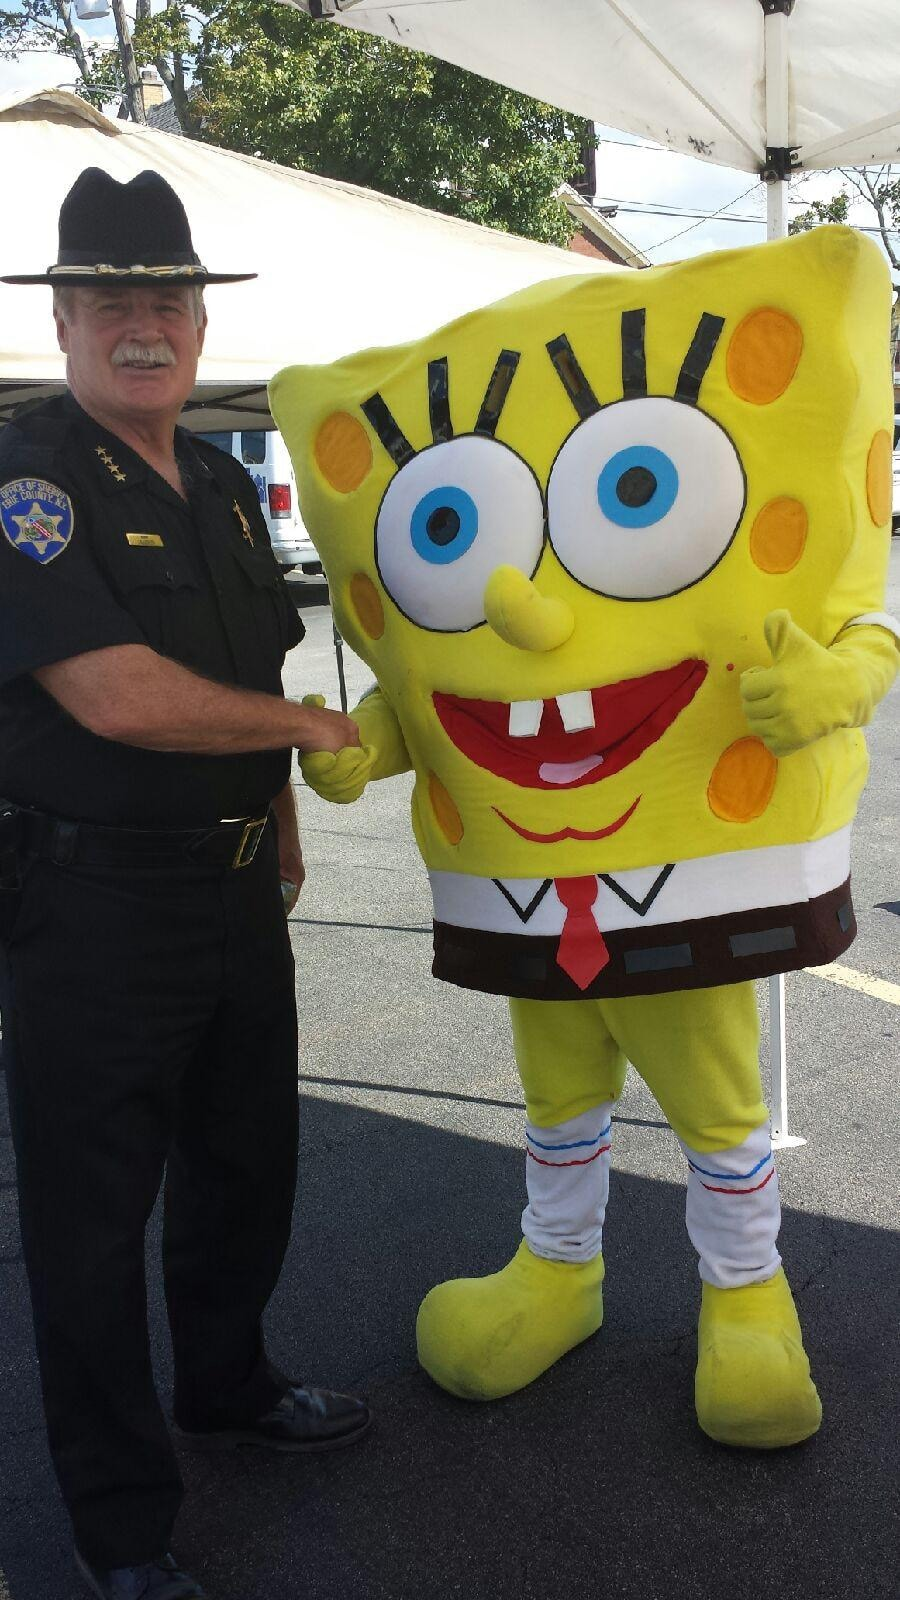 Sheriff Howard with Spongebob Squarepants.